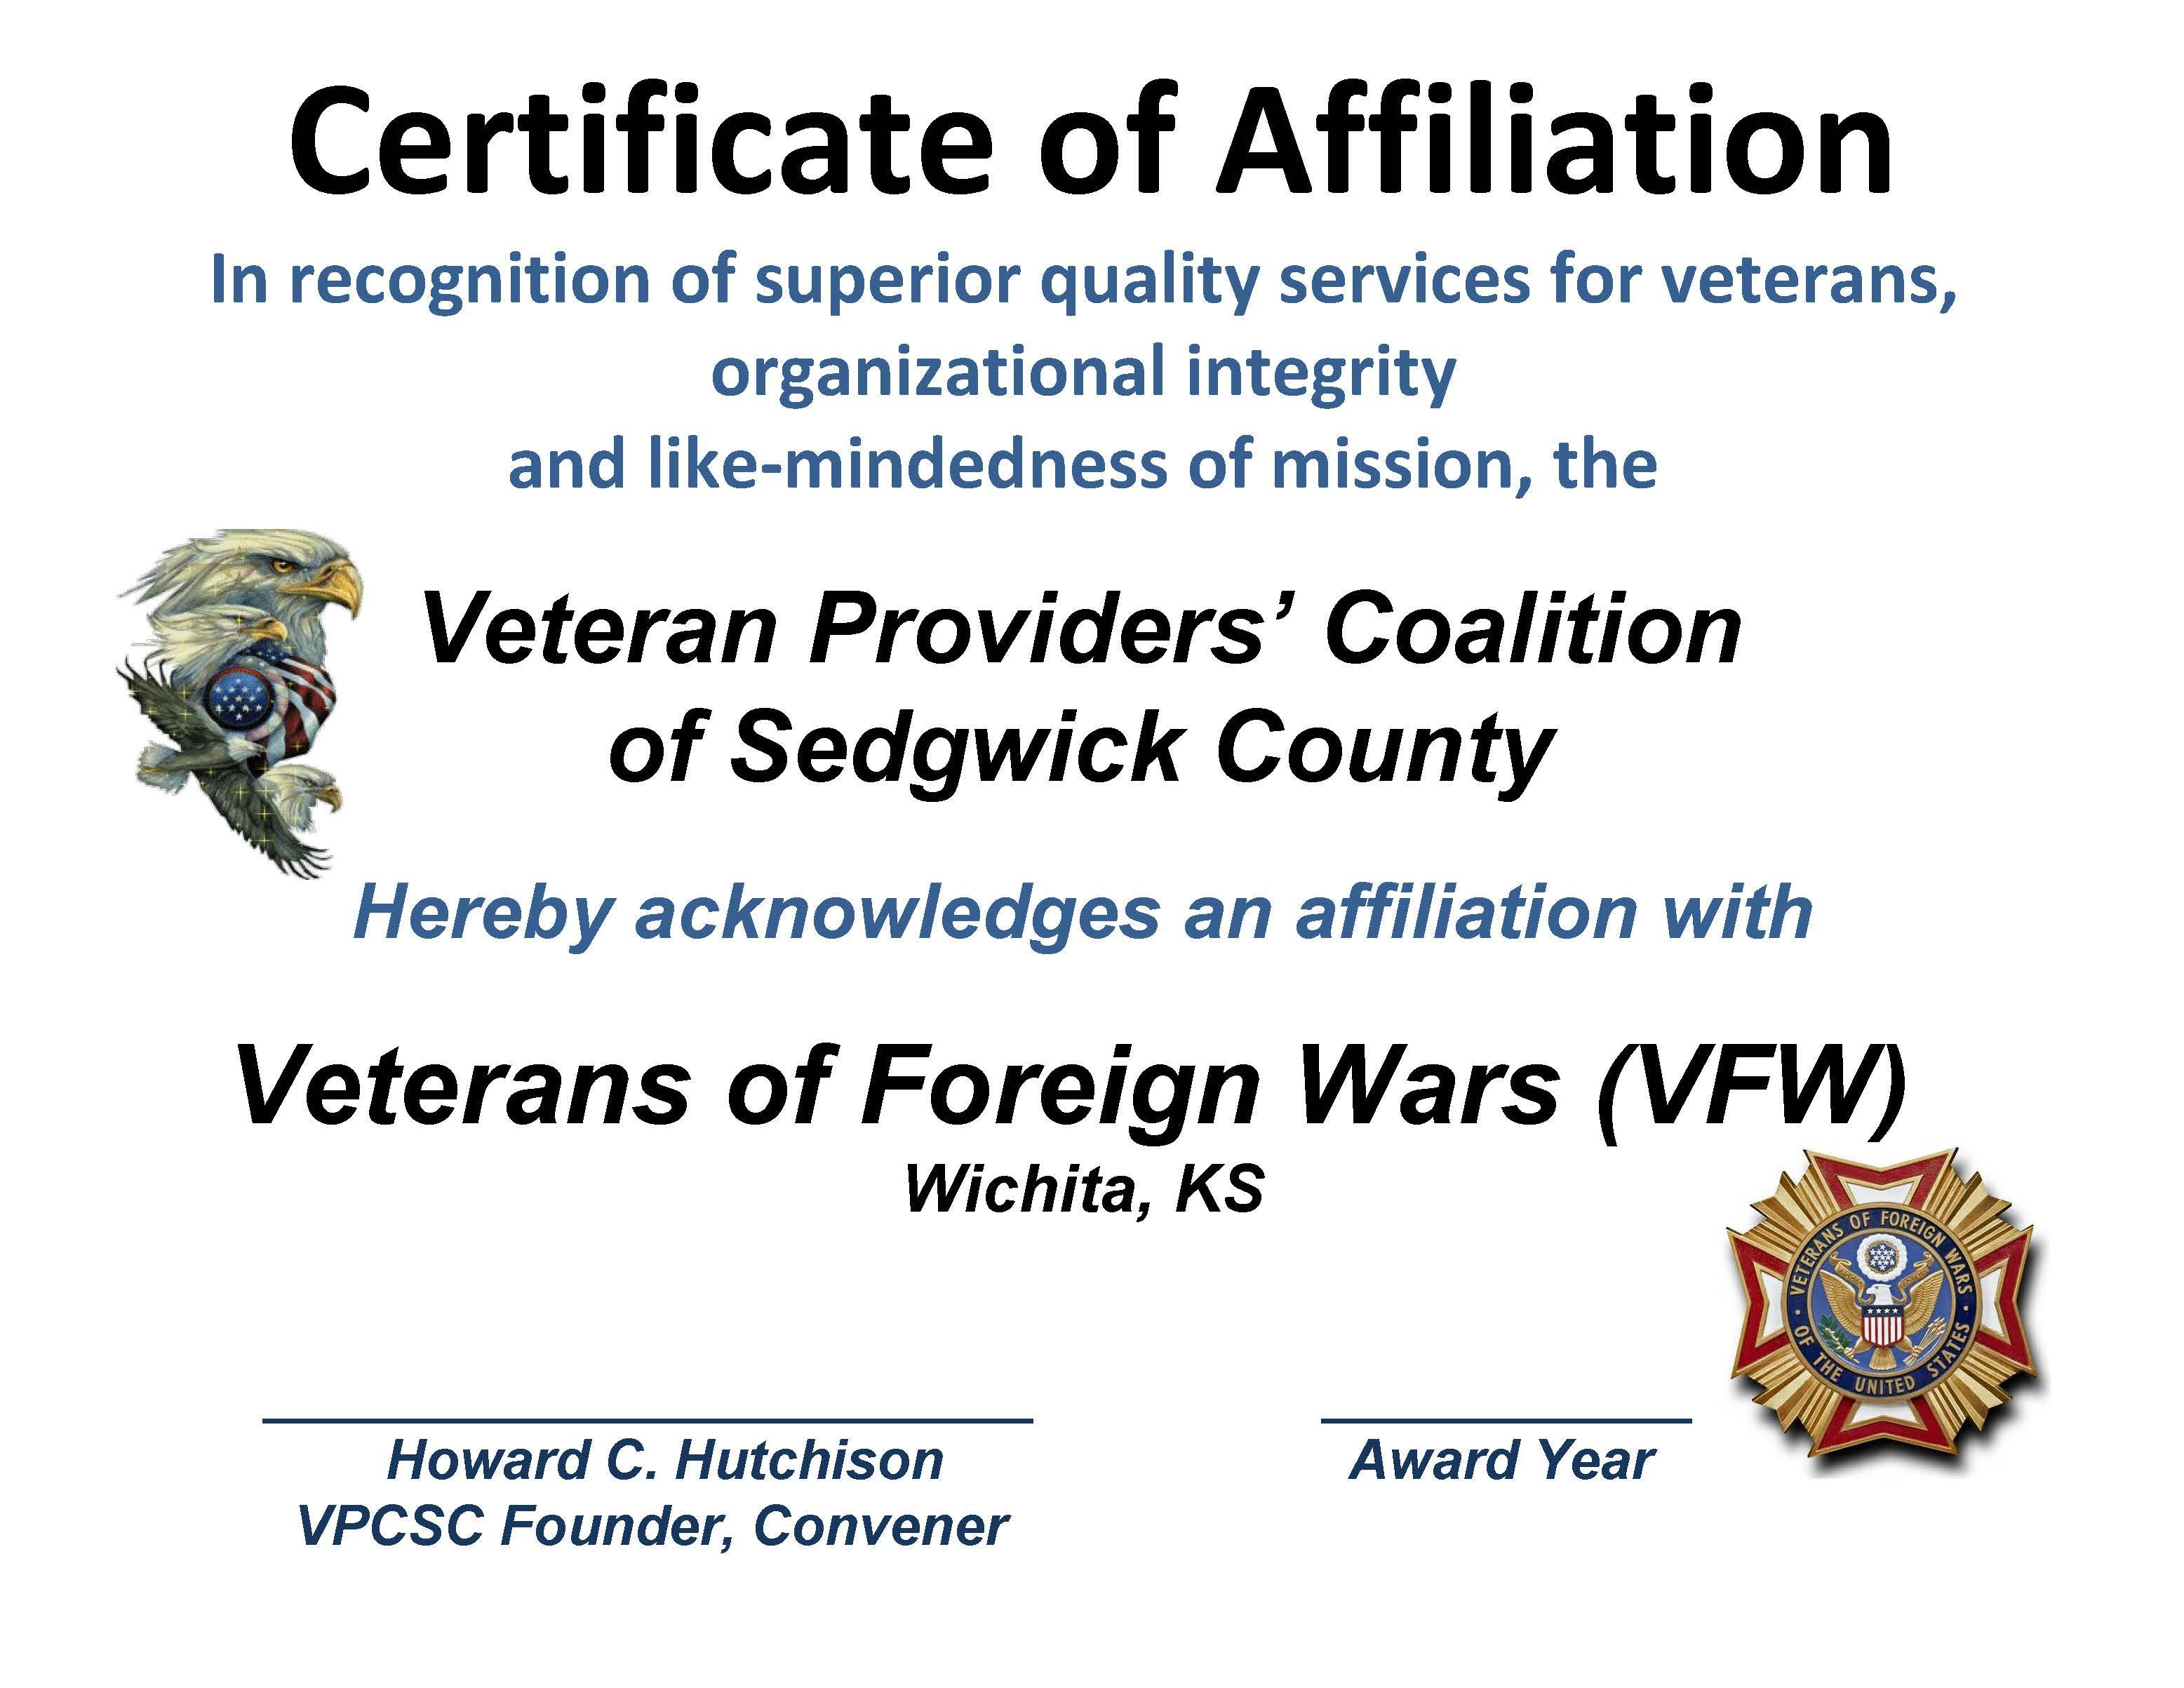 AFFILIATION - CERT. VFW 2015